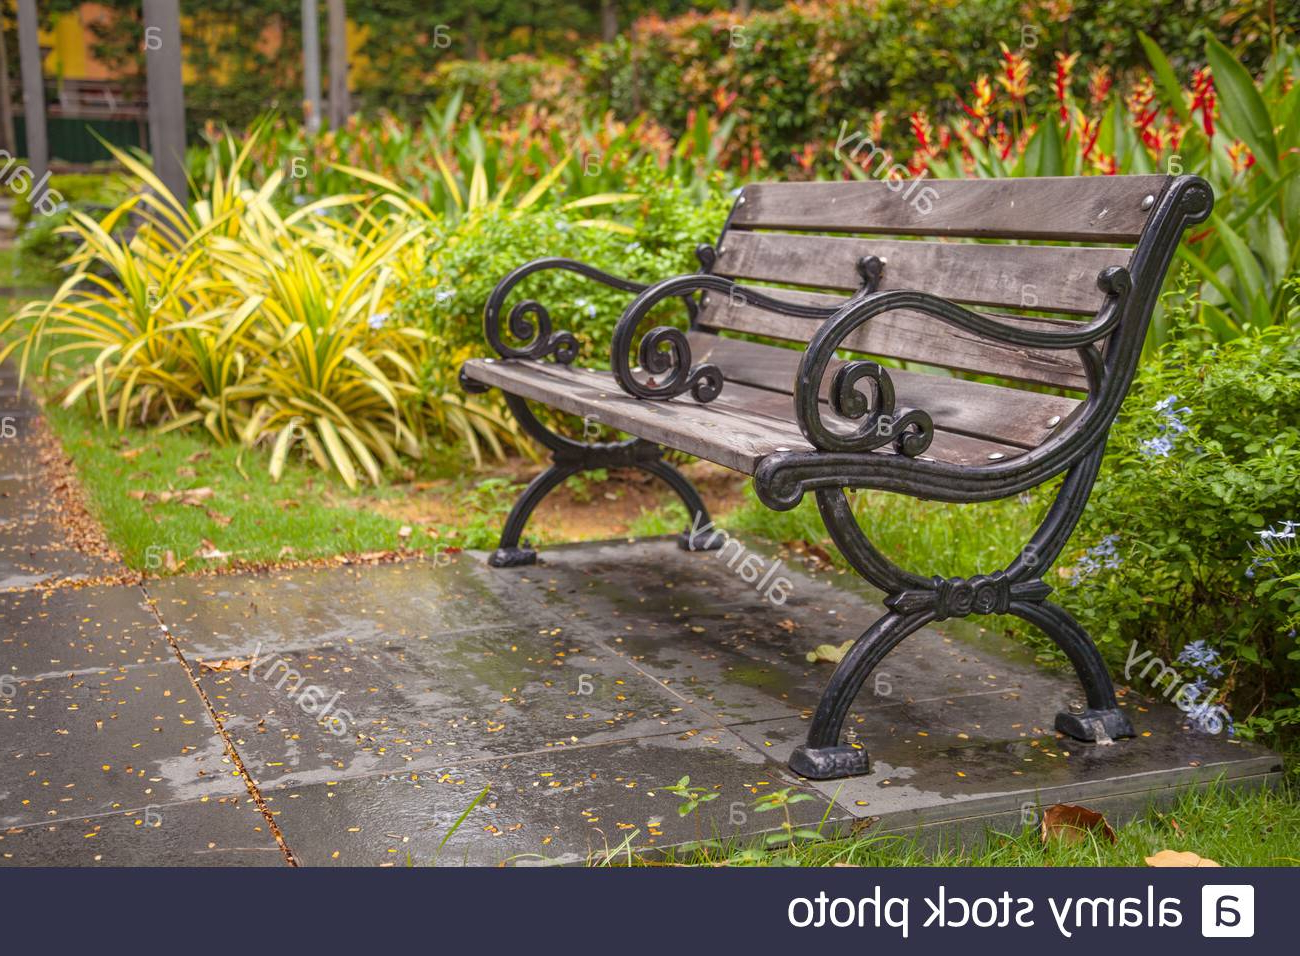 Strasburg Blossoming Decorative Iron Garden Benches Regarding Well Known Page 2 – Public Garden Bench High Resolution Stock (View 8 of 30)